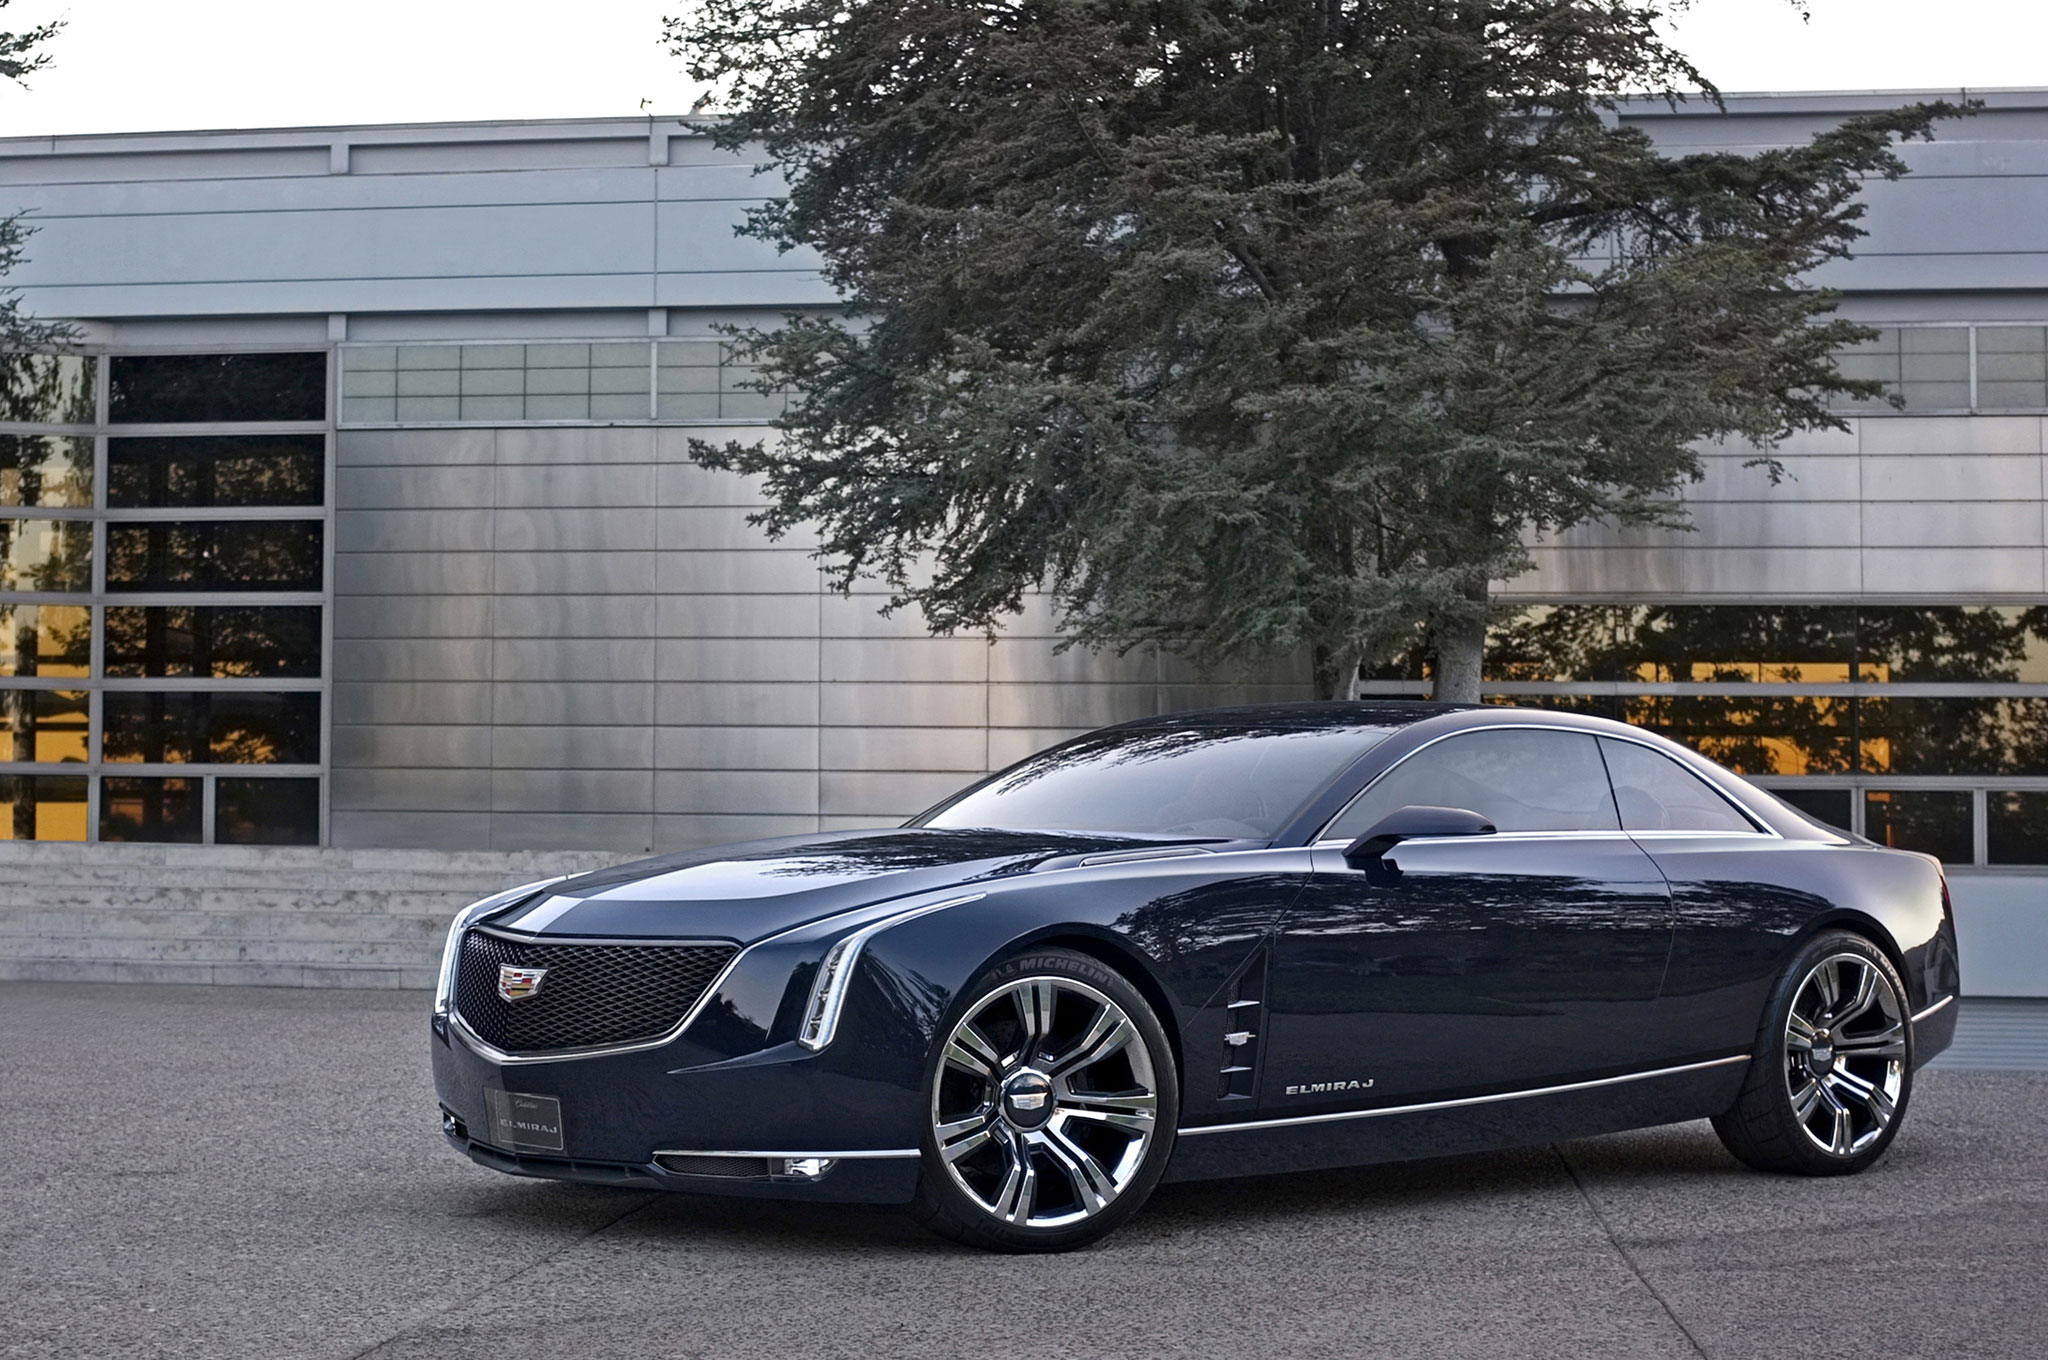 2013 Cadillac Elmiraj Concept Front Left Side View1